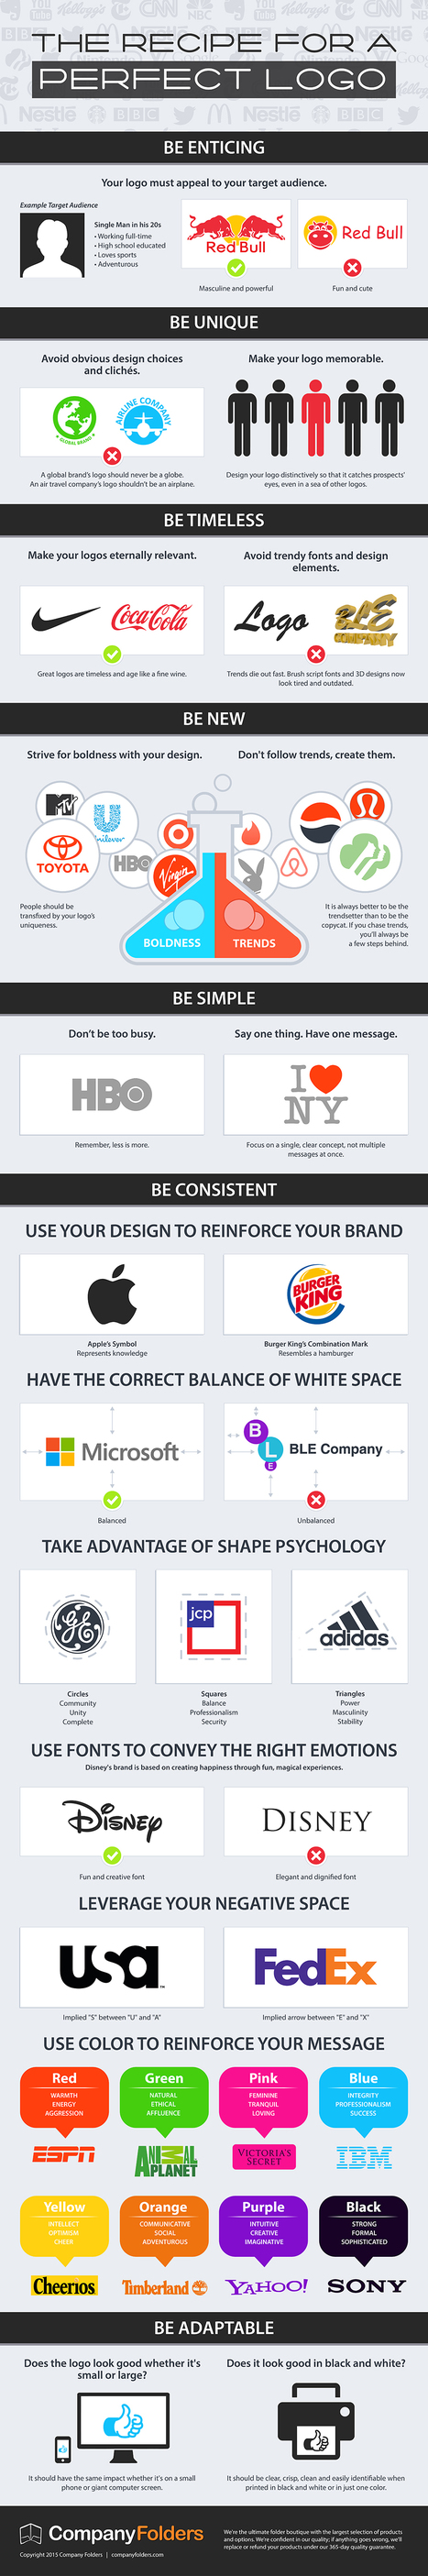 7 Tips for a Perfect Business Logo #Infographic | MarketingHits | Scoop.it